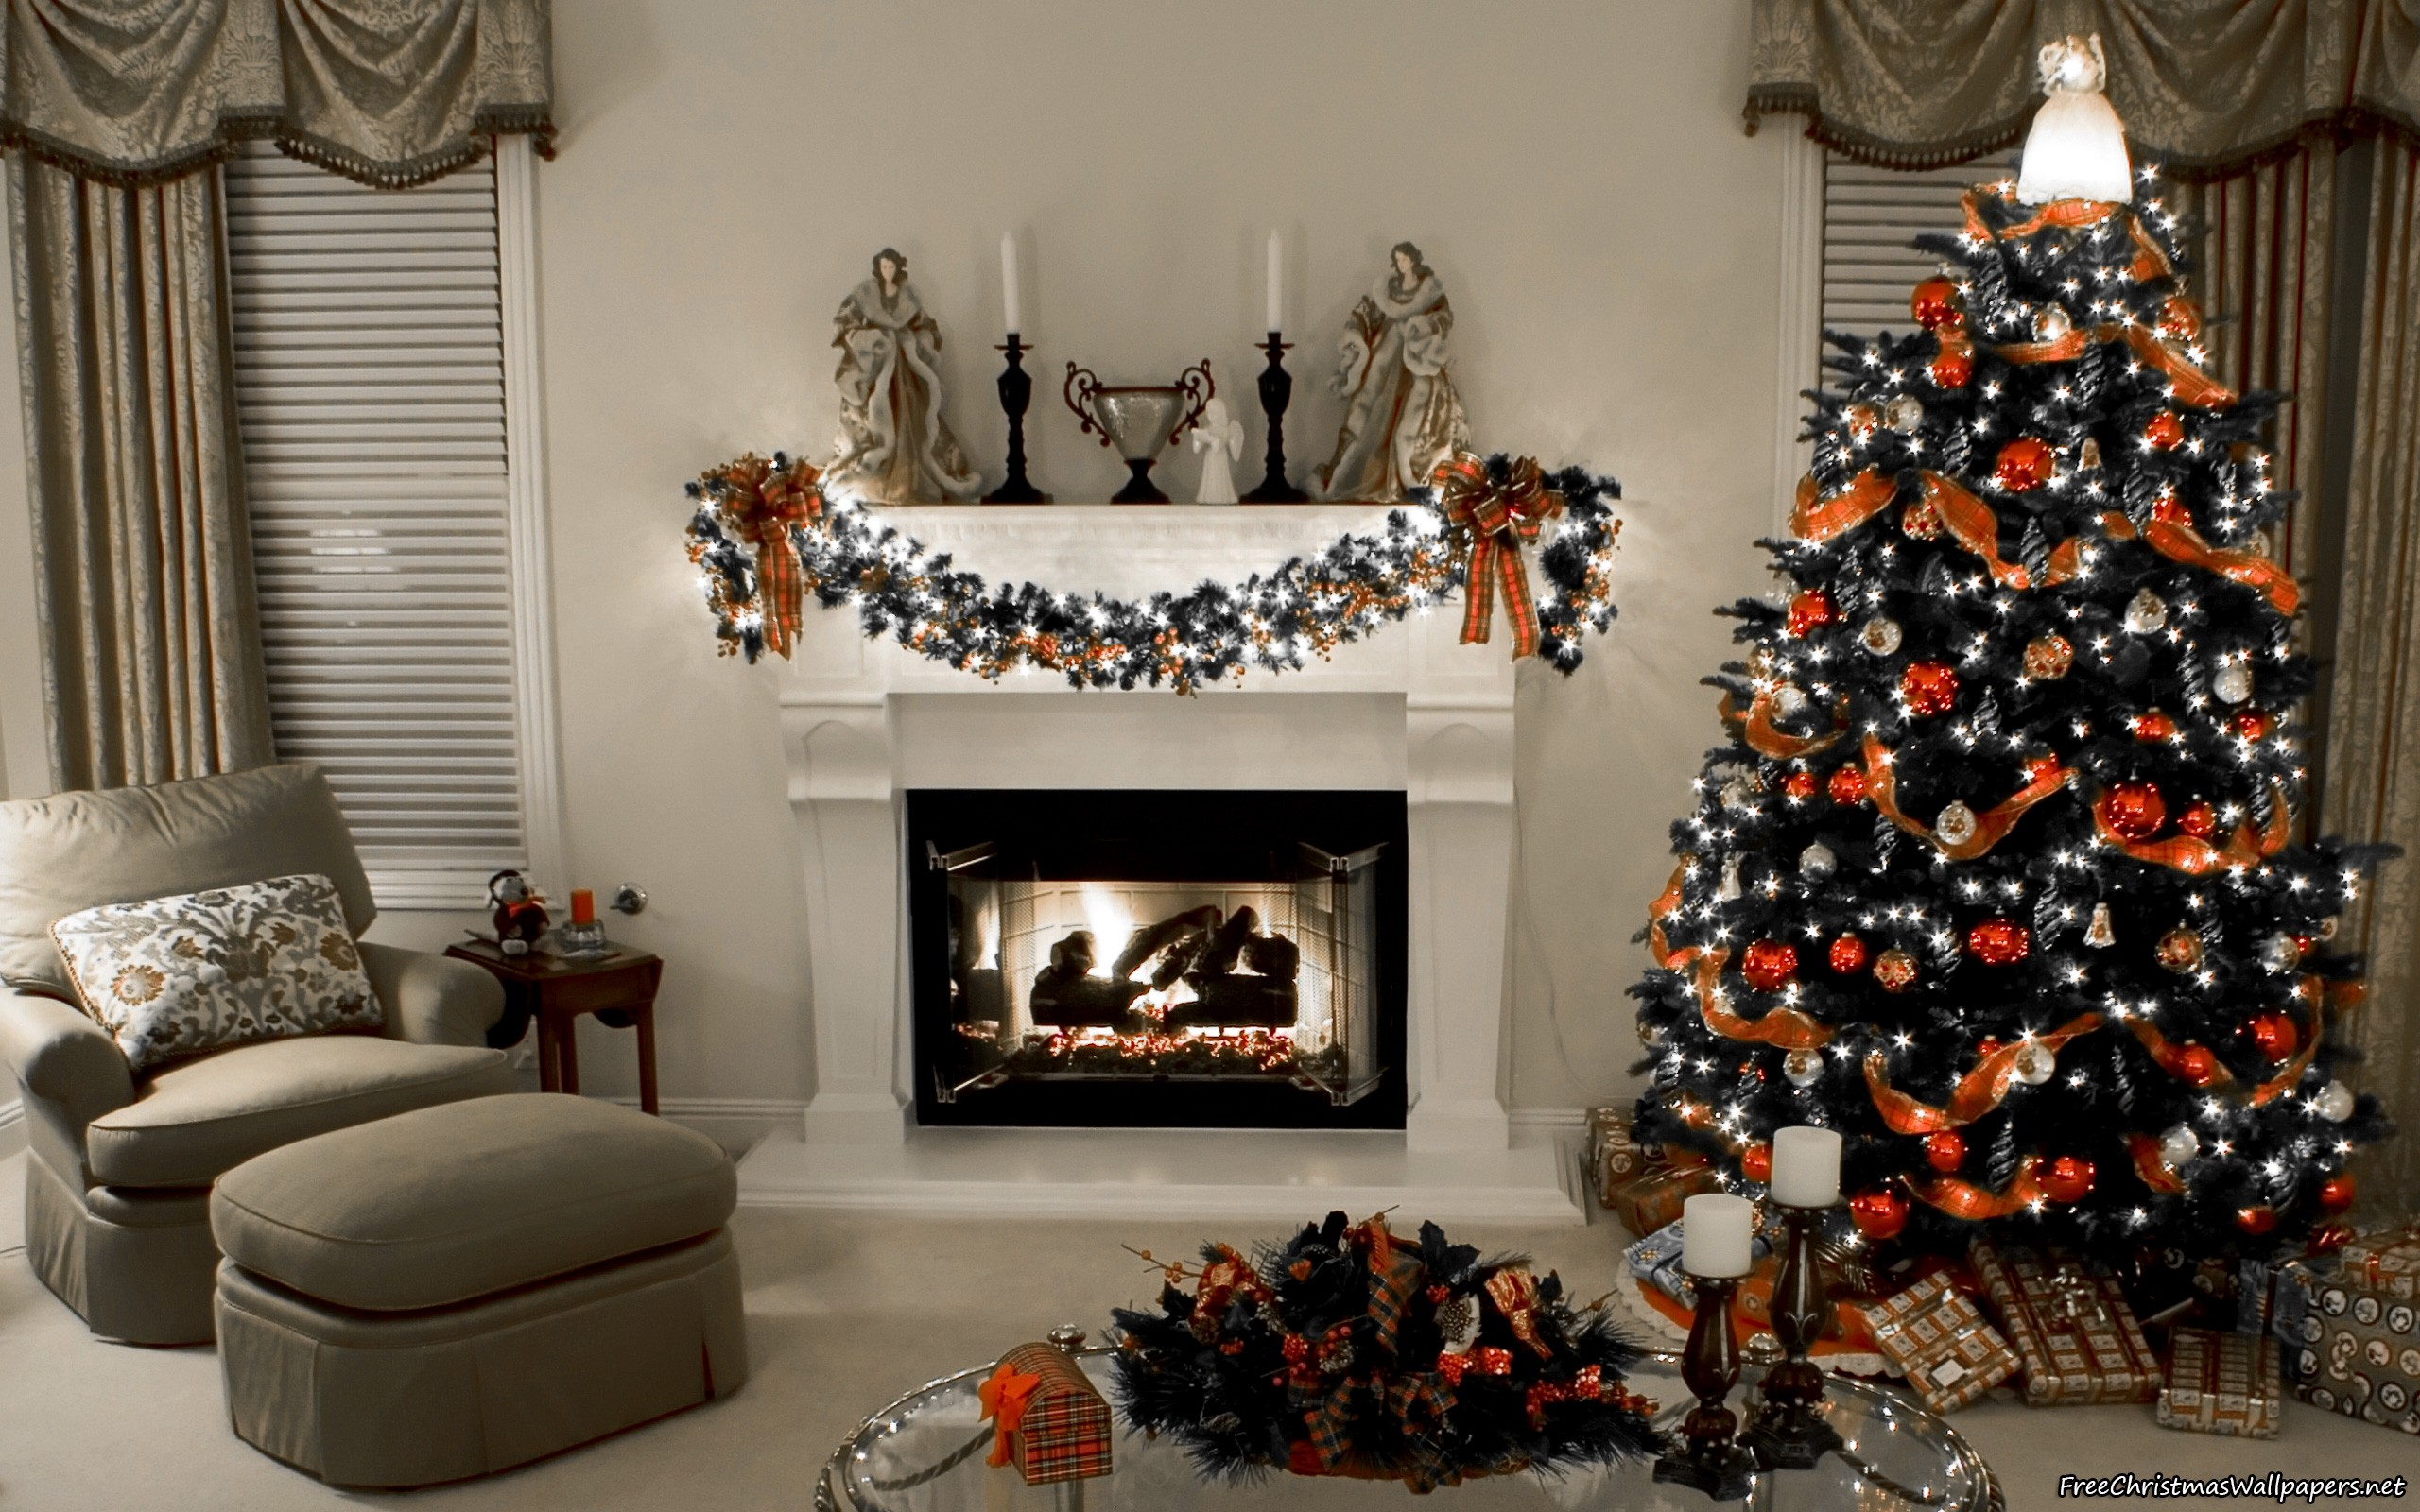 Christmas Fireplace Wallpaper Decorated Christmas Fireplace And Tree Hd Wallpapers Hd Wallpapers